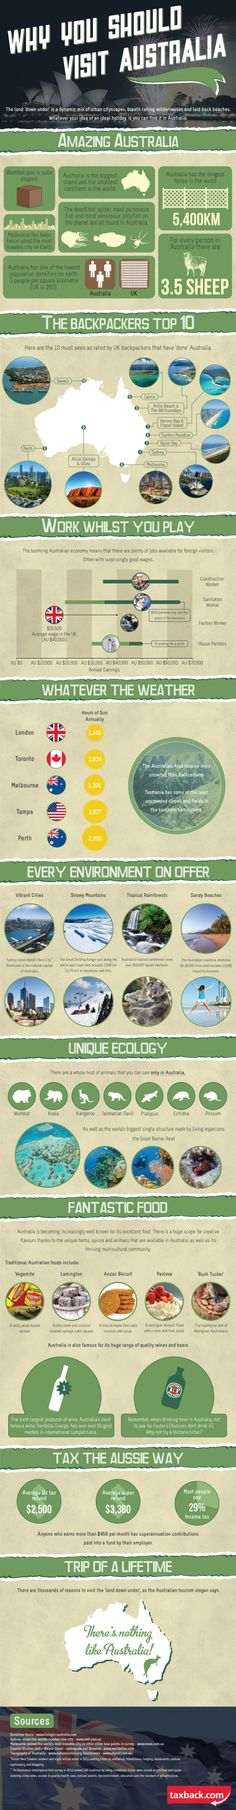 Why you should visit Australia #infographic